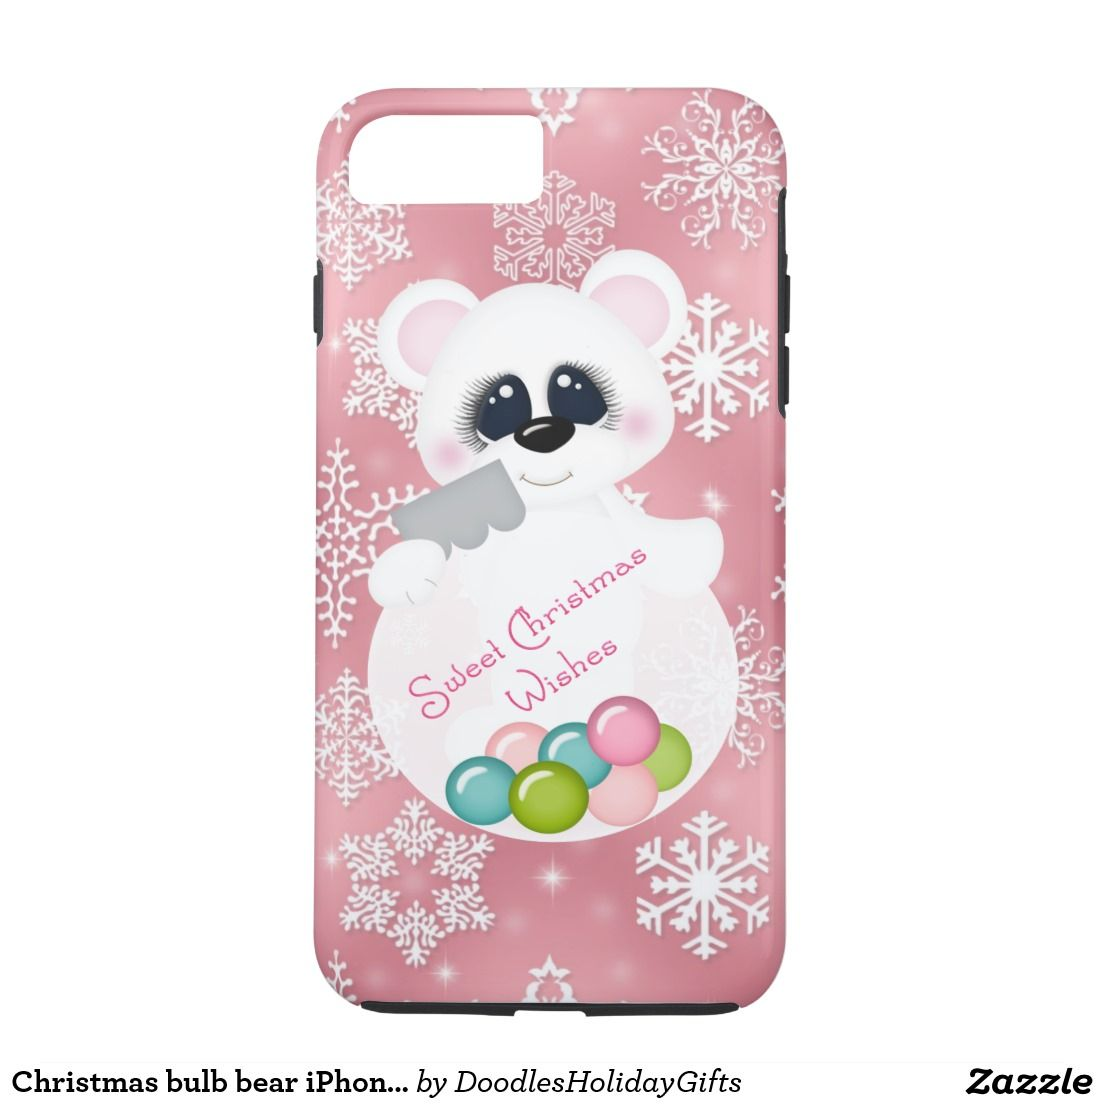 Christmas bulb bear iPhone 7 tough case | Christmas iPhones, iPod ...